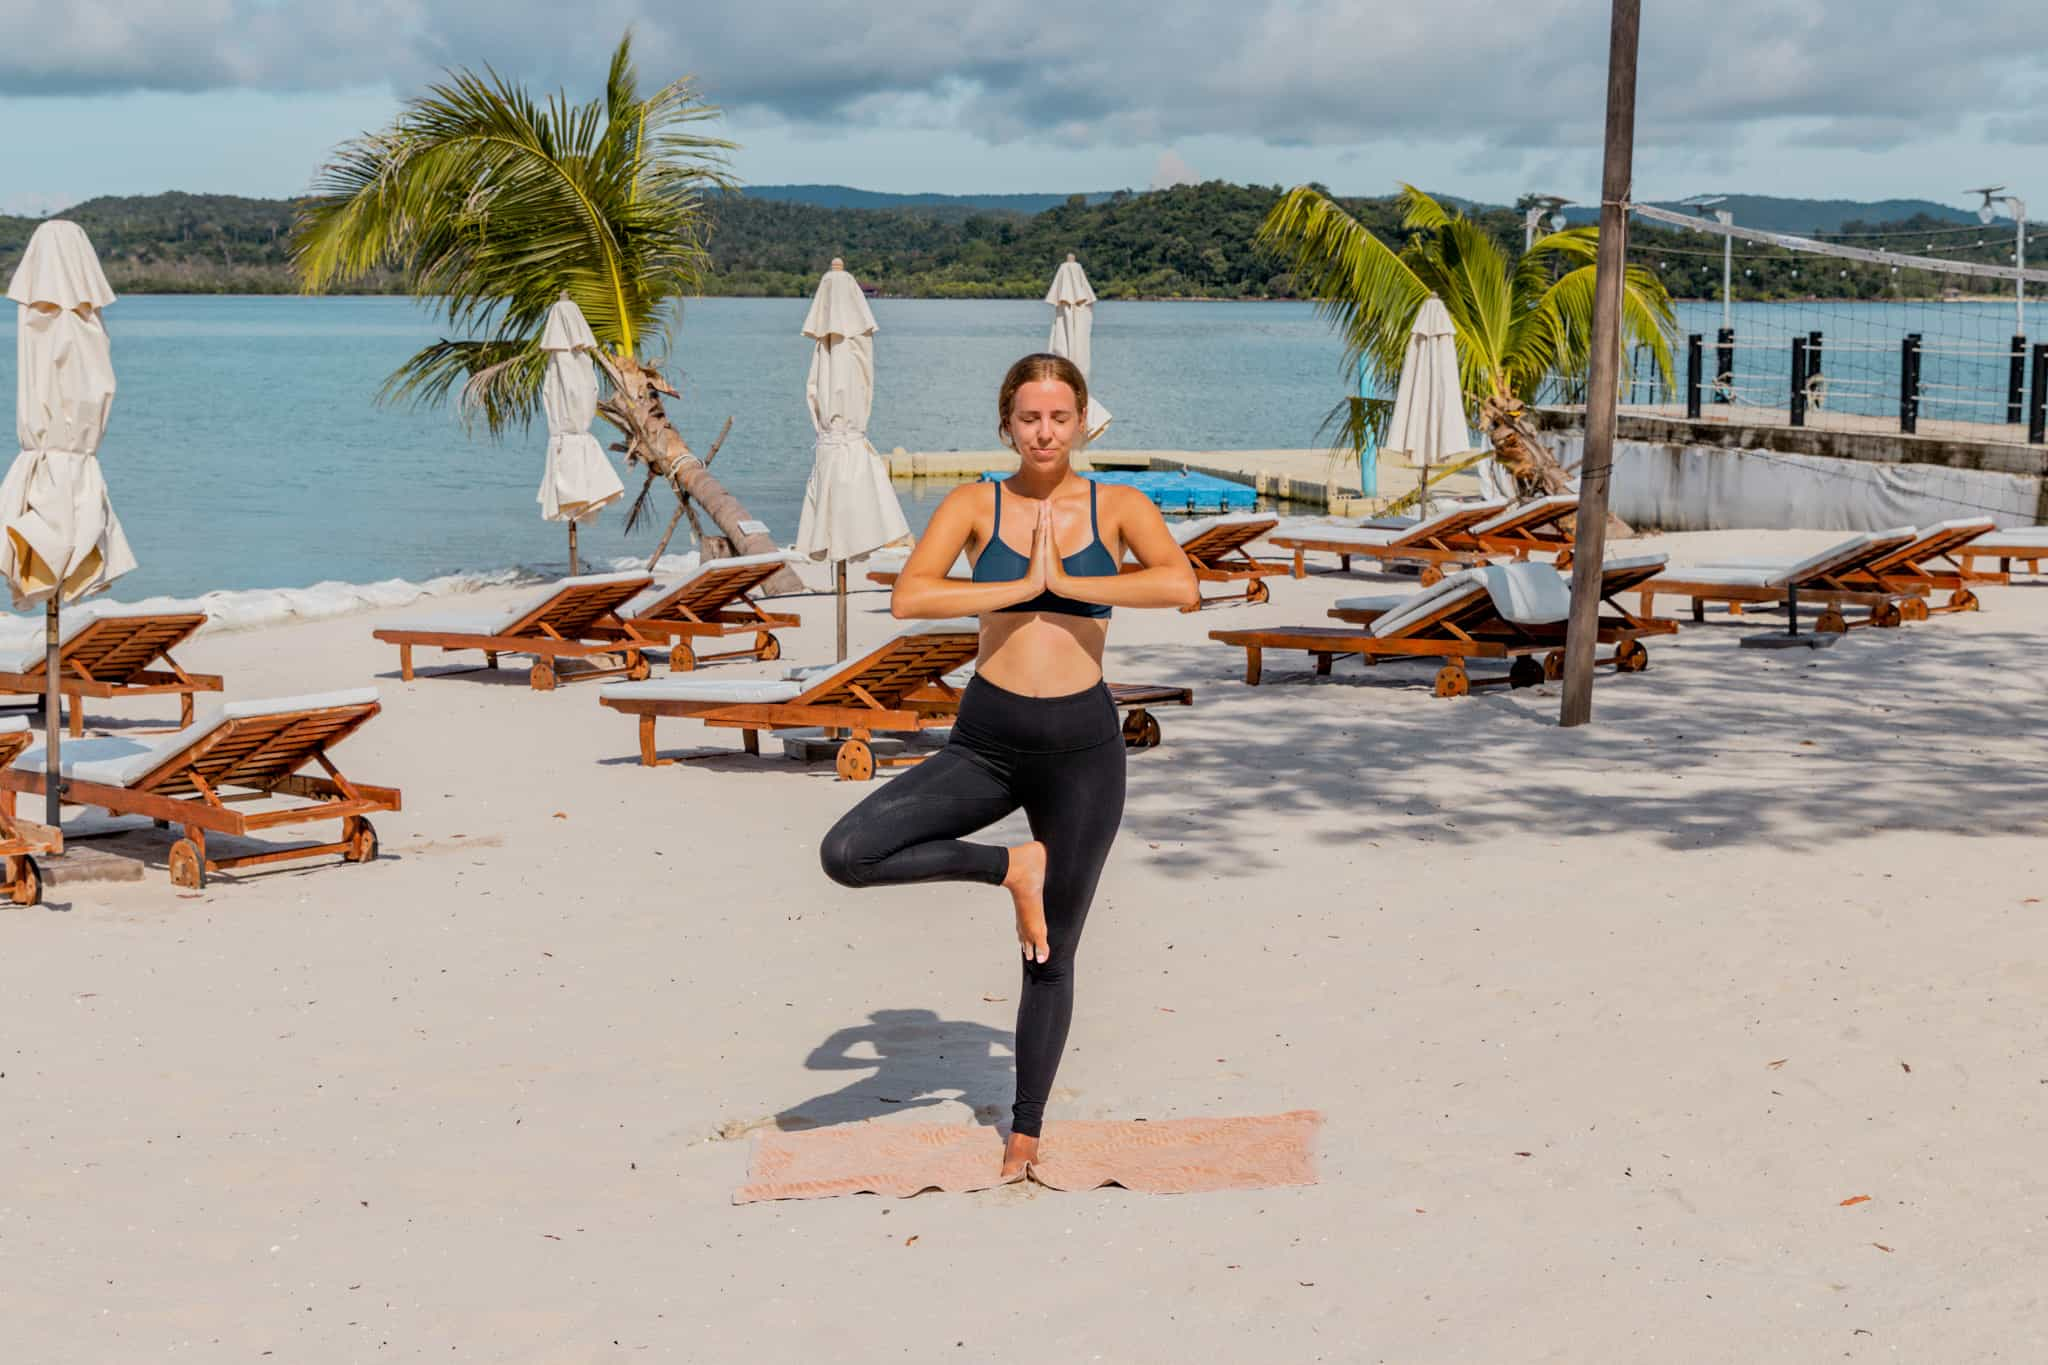 Alicia doing yoga on beach in Koh Rong, Cambodia